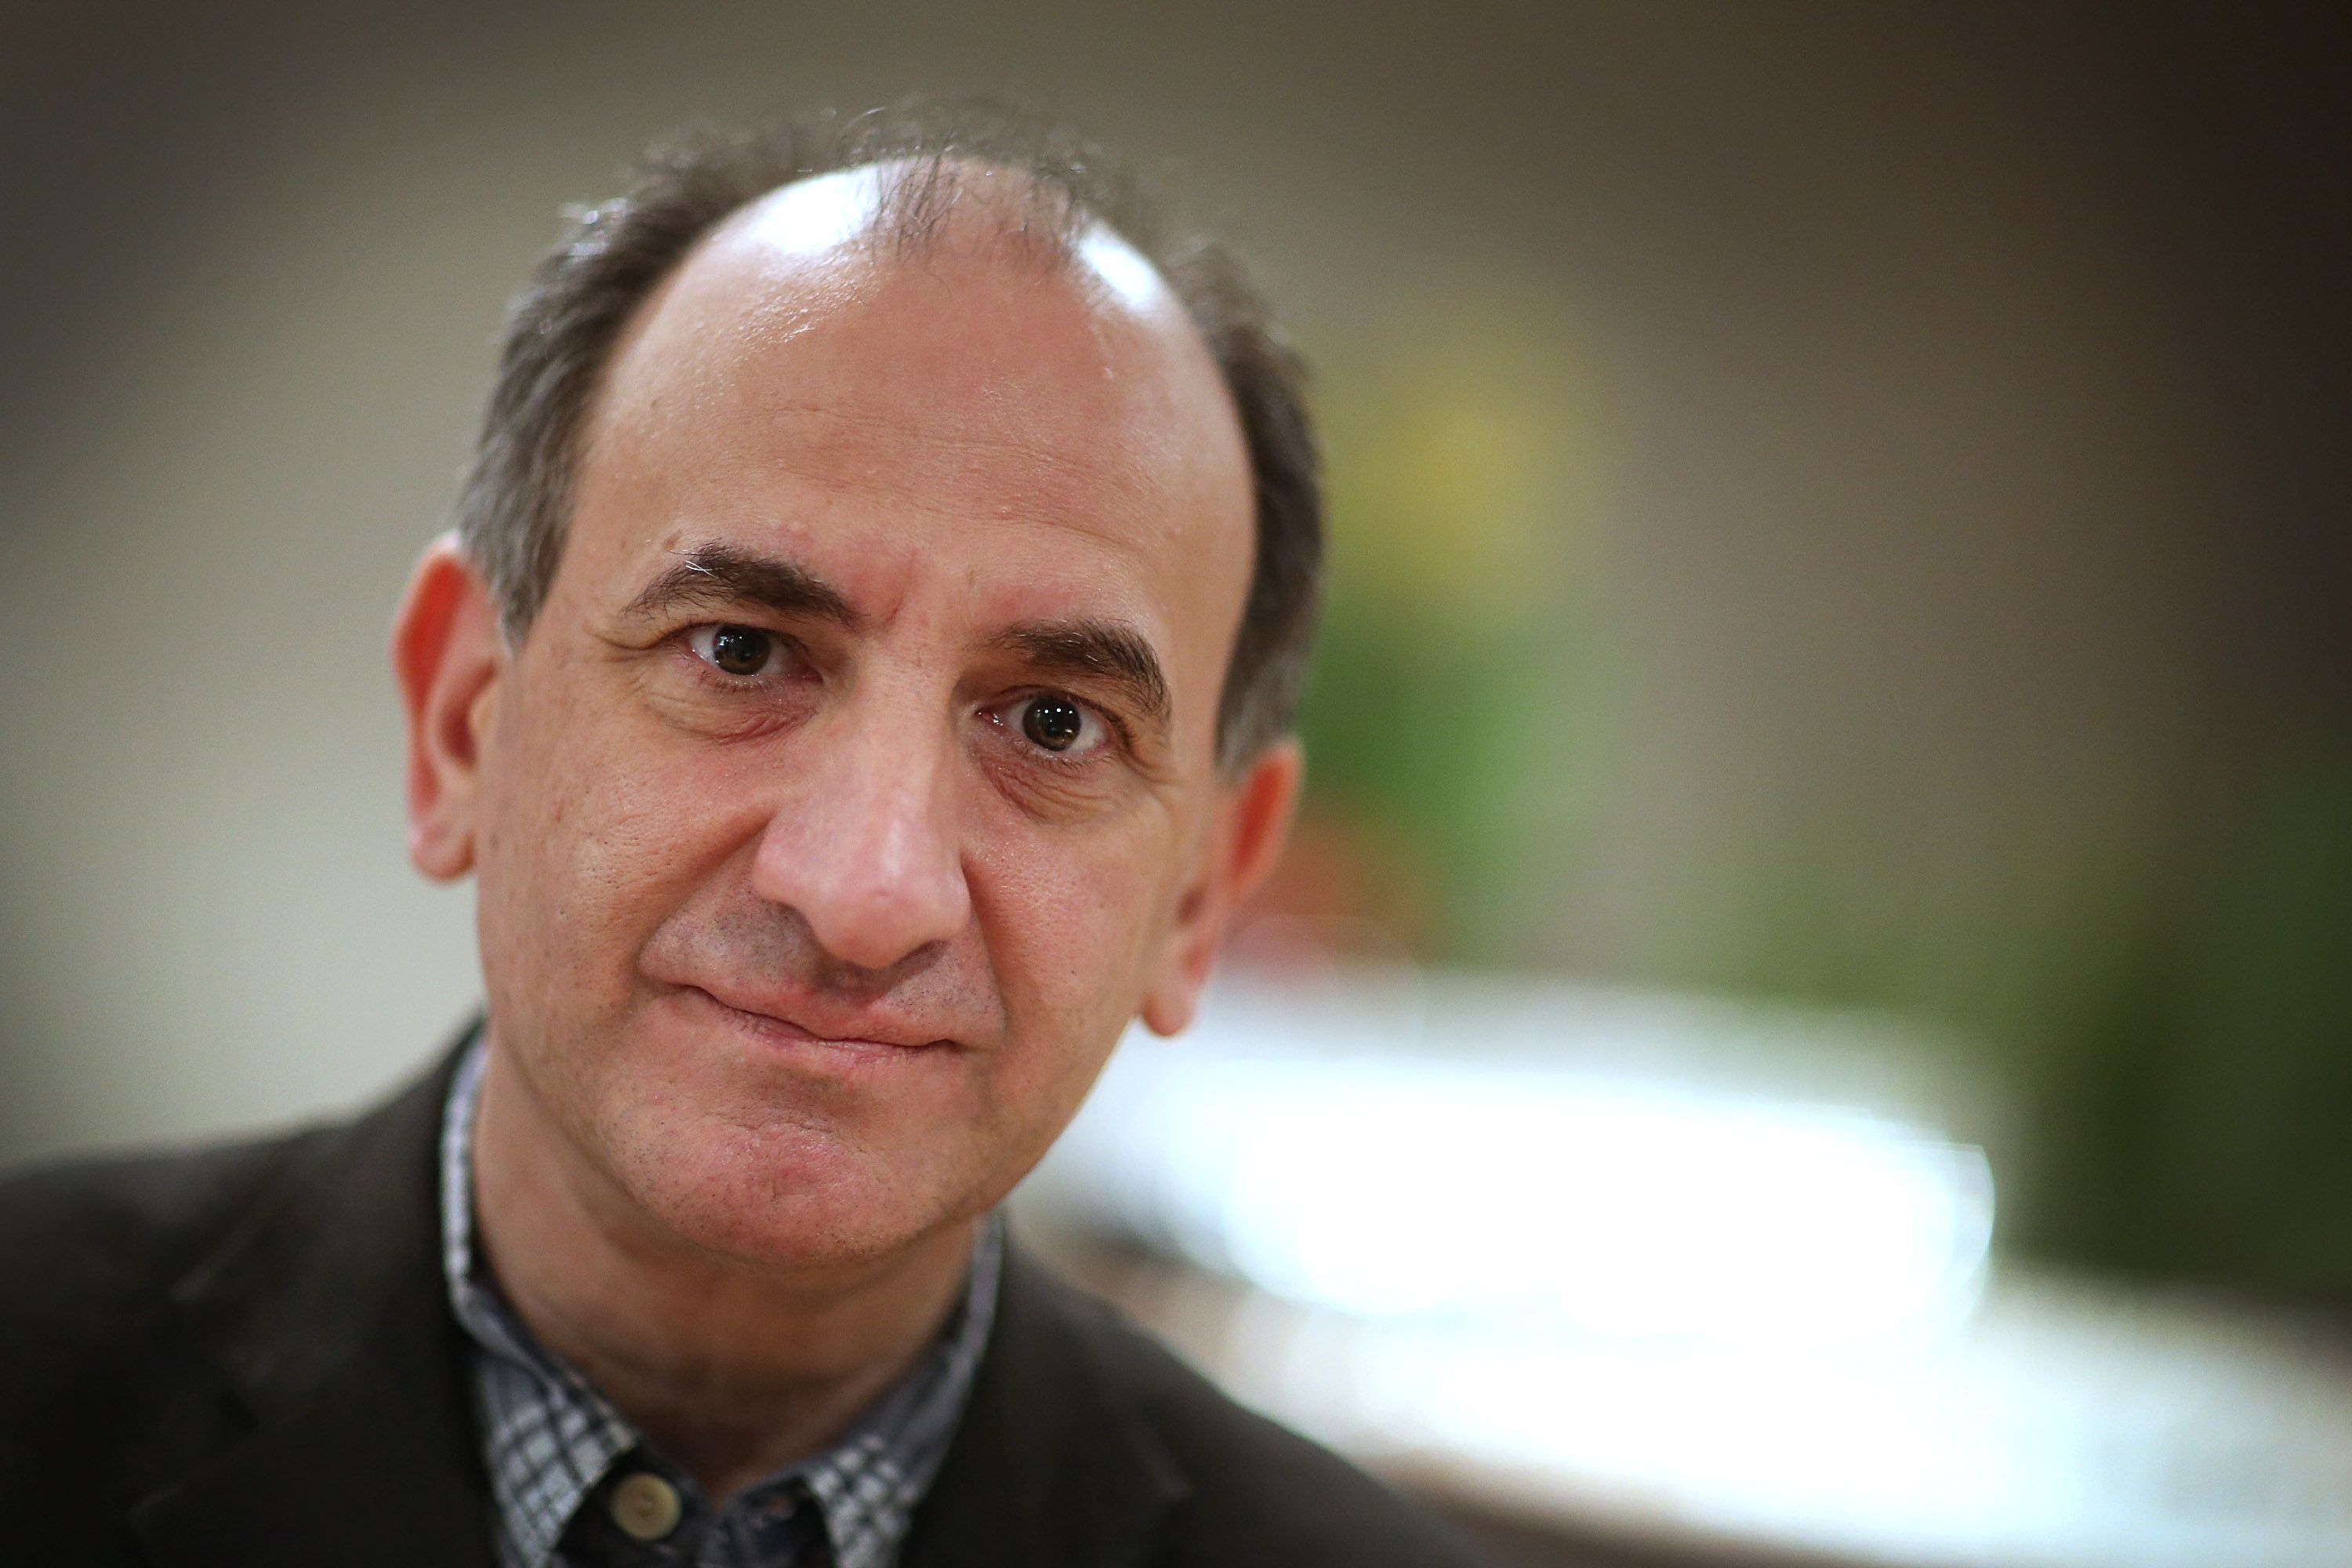 Armando Iannucci On 'David Copperfield', 'Avenue 5', And The Brilliance Of 'Succession'